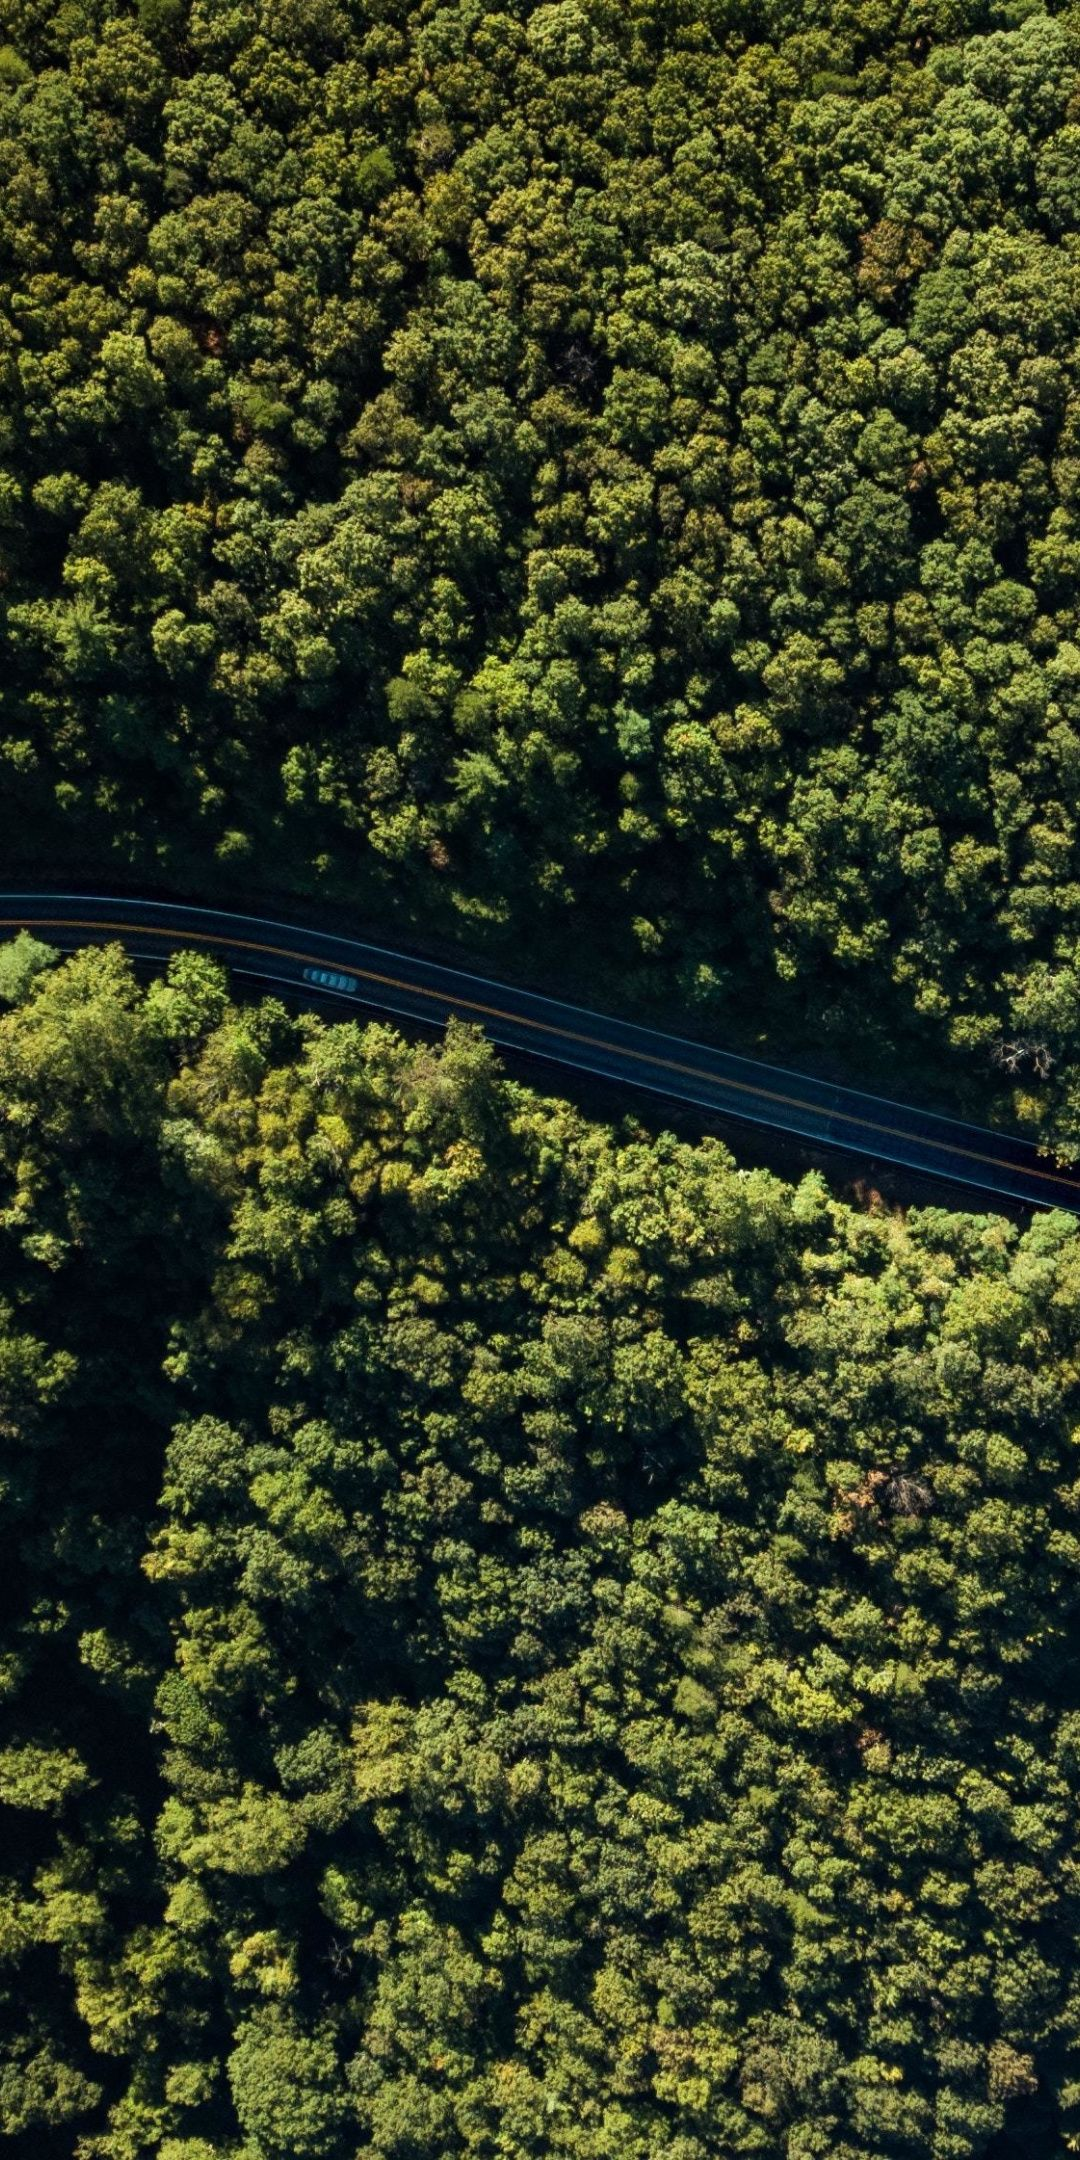 Aerial View Forest Green Trees Highway 1080x2160 Wallpaper Tree Photoshop Aerial View Aerial Images Hd wallpaper forest trees aerial view